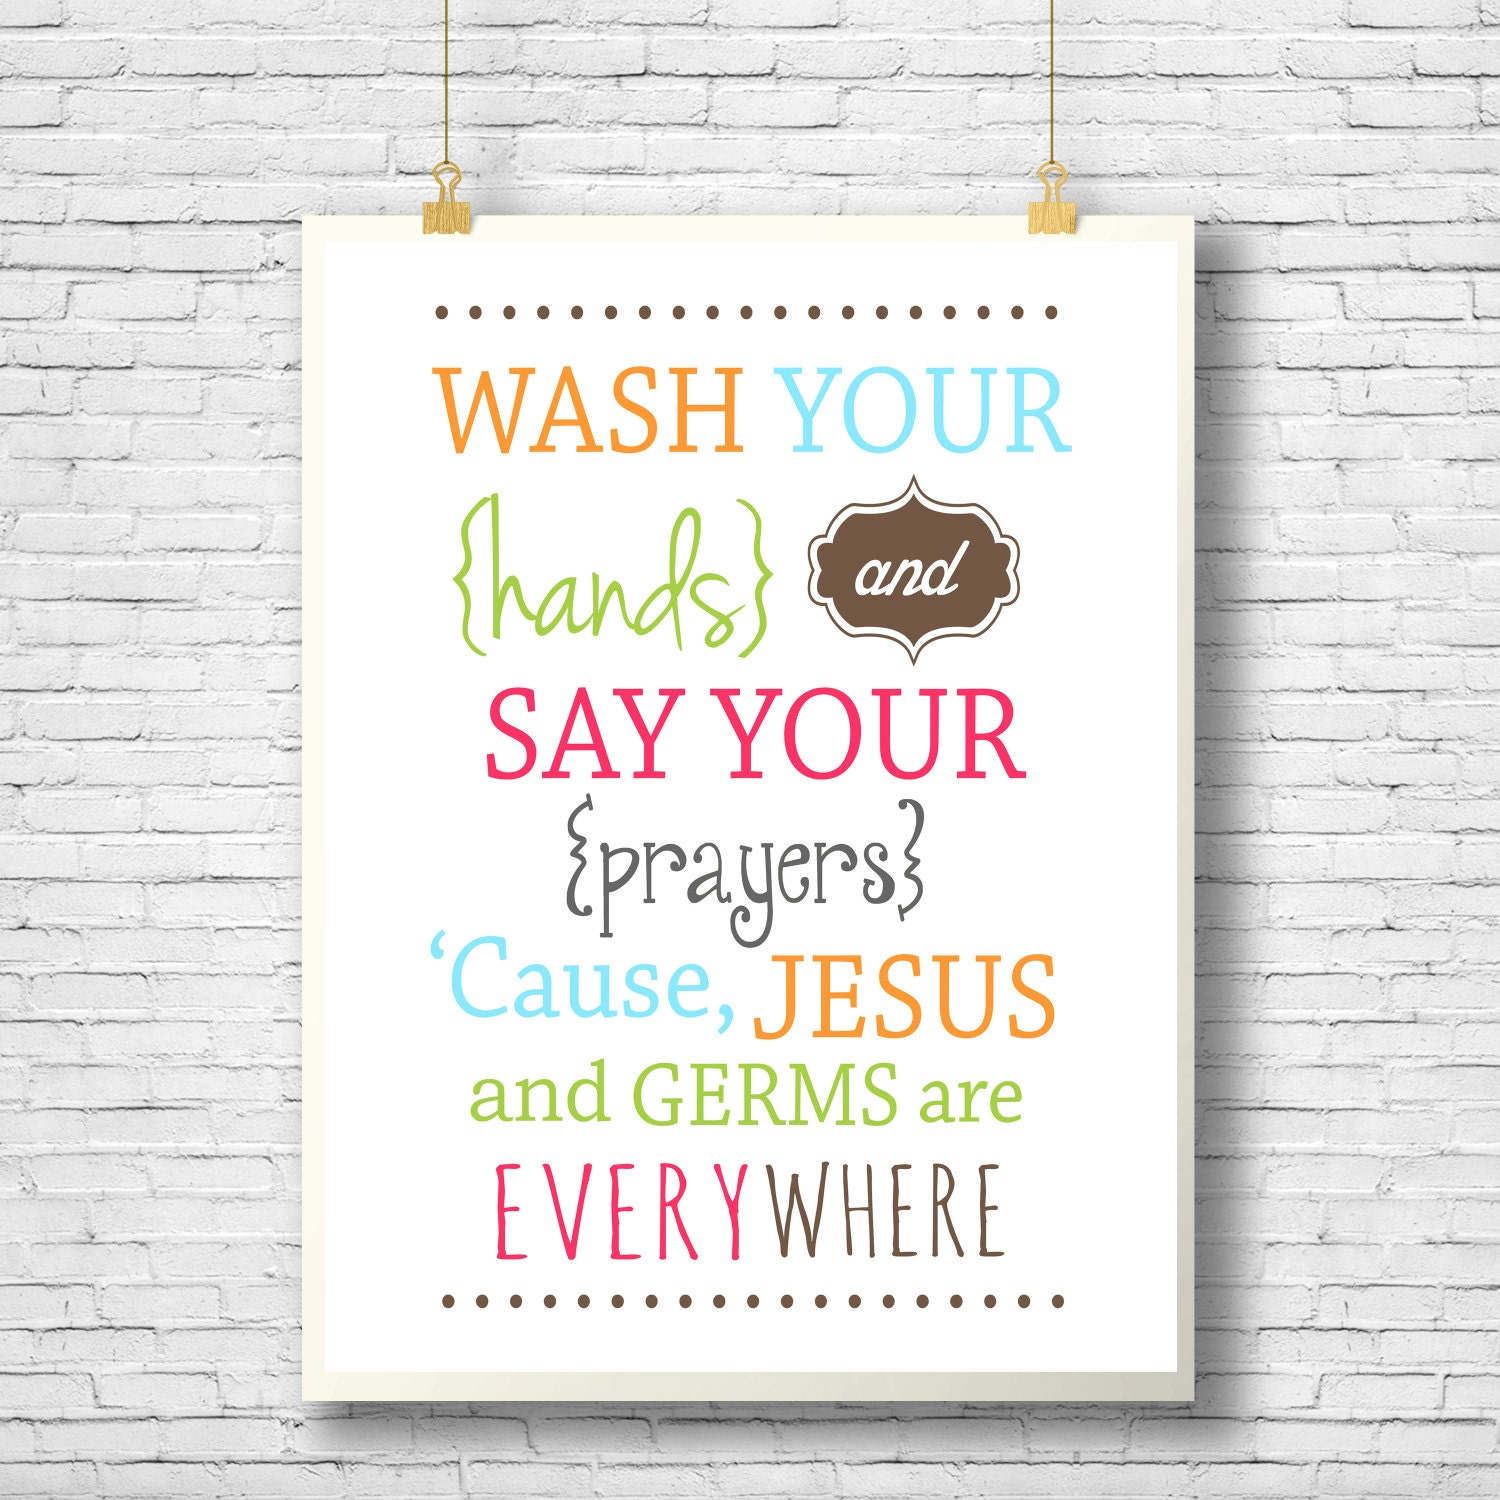 photograph relating to Wash Your Hands and Say Your Prayers Printable known as Printable, Wall decor, Clean Your Fingers and Say Your Prayers, wall artwork, rest room printable, Do it yourself, youngsters print, Christian Typography